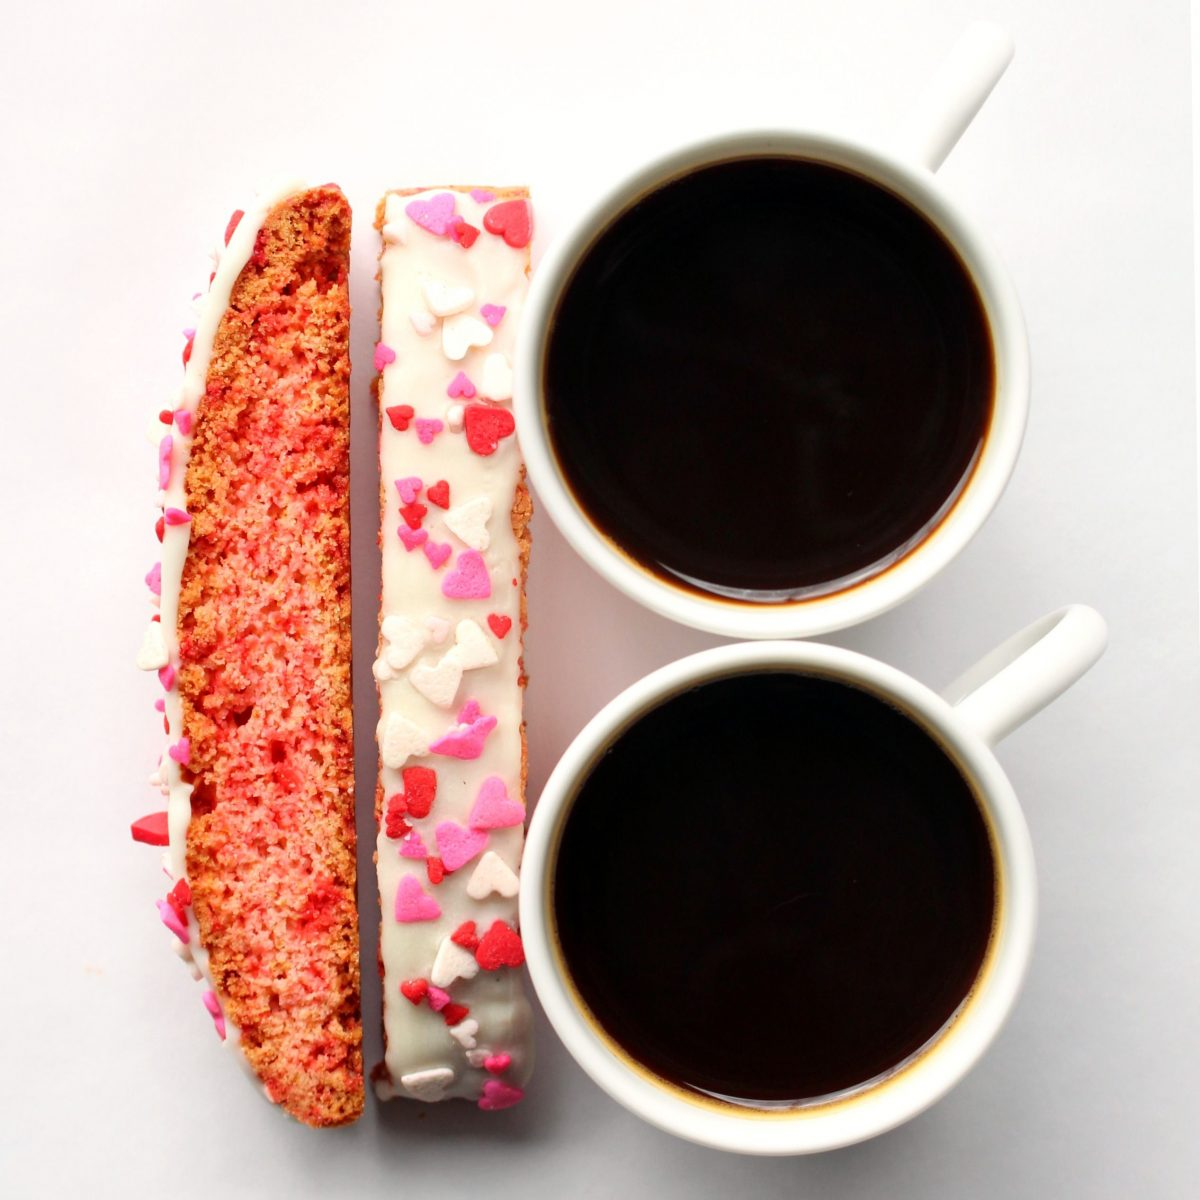 Two biscotti decorated on top with white chocolate and heart sprinkles, next to two espresso mugs.